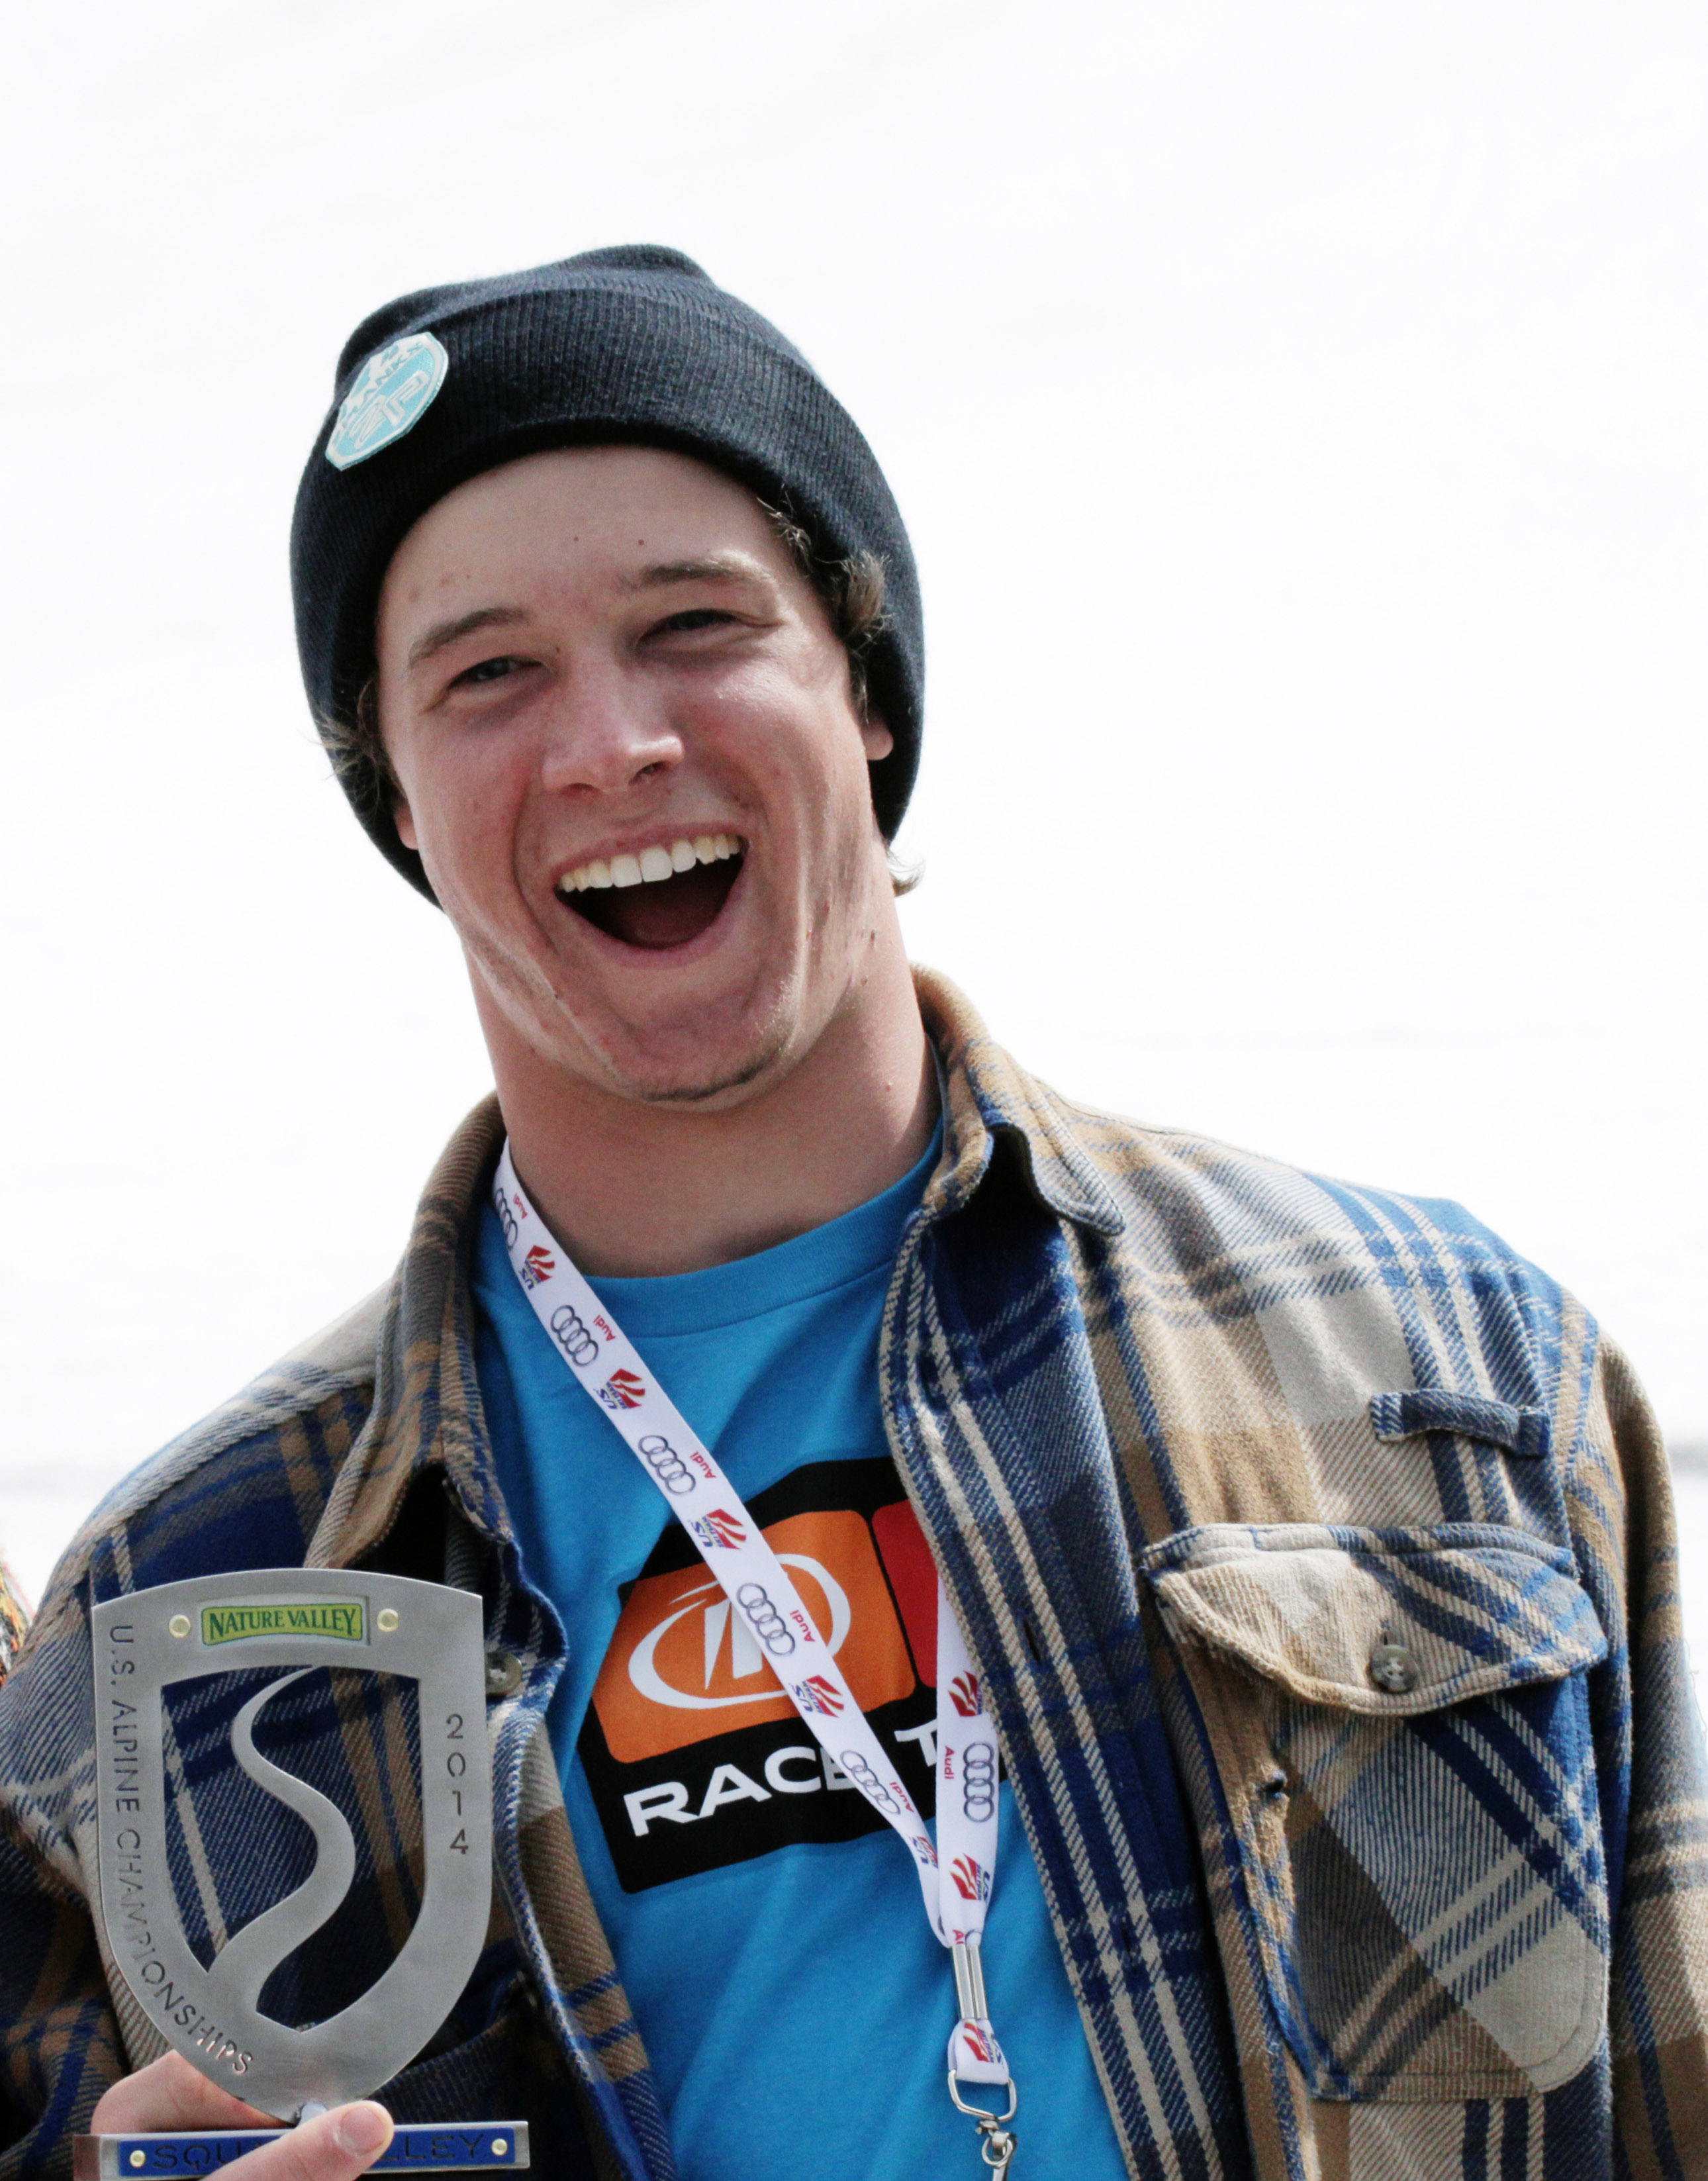 Sandy native and prospective U.S. ski team member Bryce Astle, 19, was killed in an avalanche while skiing near the US ski team training base in the Austrian Alps. (AP Photo/U.S. Ski Team, Sarah Brunson)